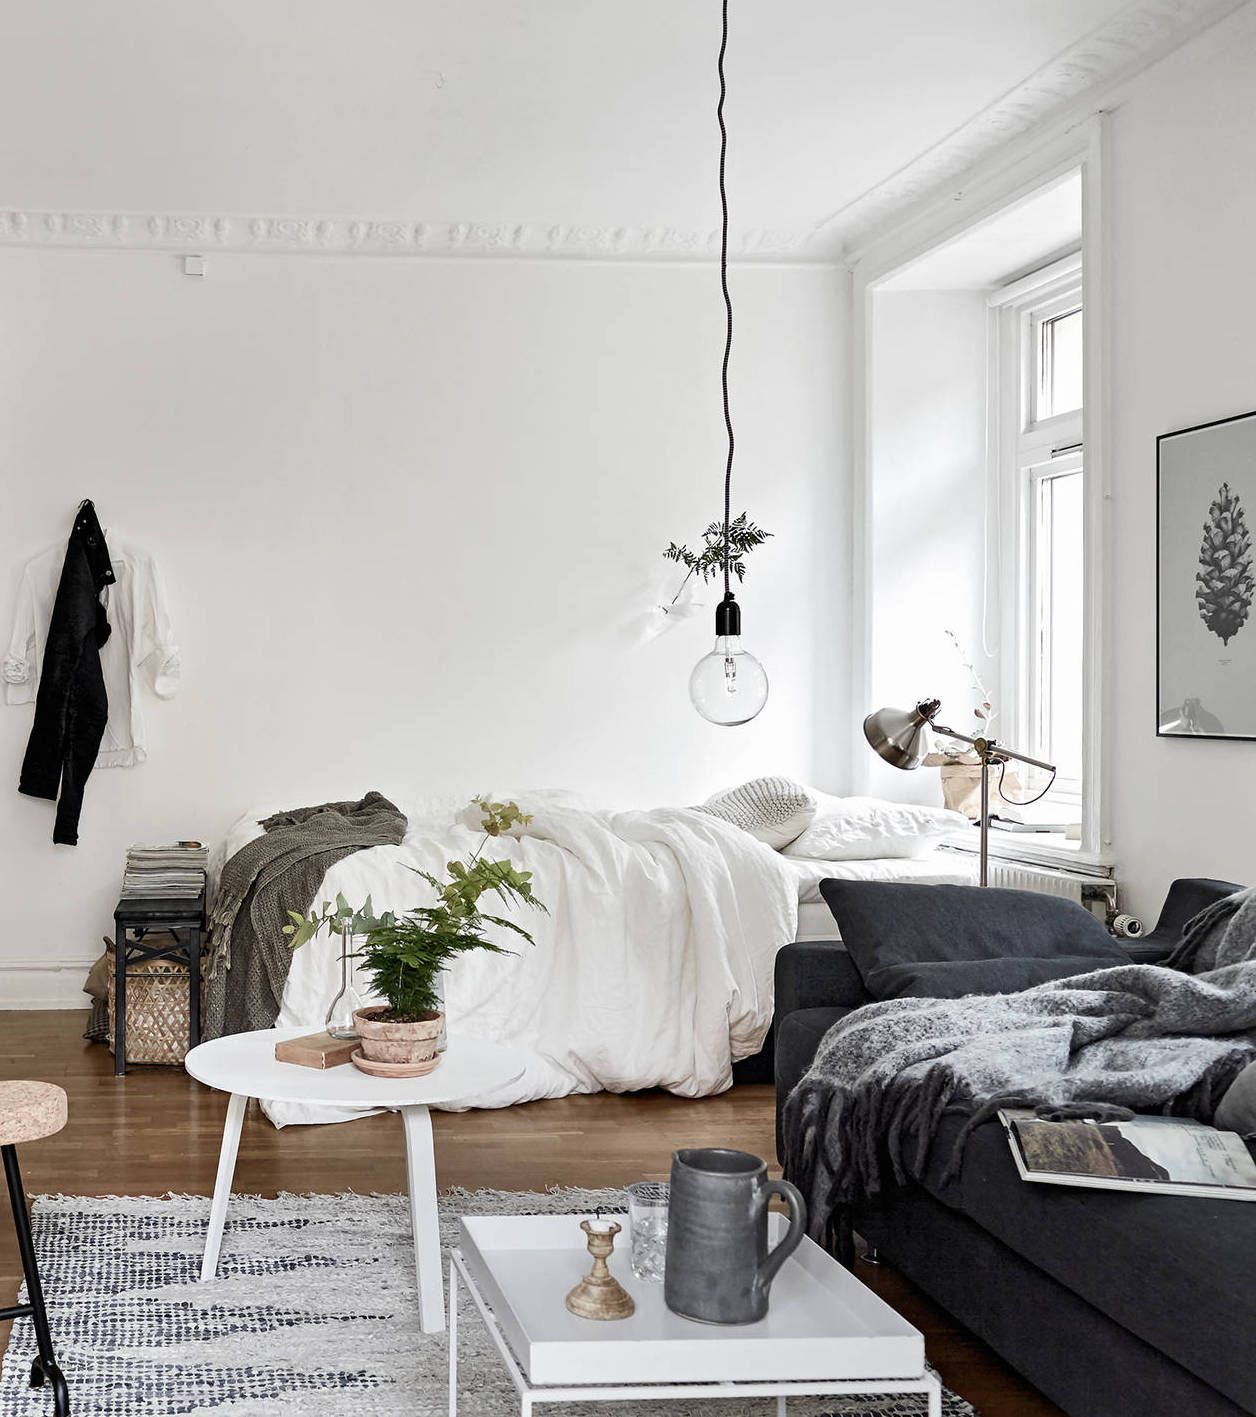 Cozy One Room Flat Coco Lapine Design One Room Flat Apartment Bedroom Decor Apartment Interior